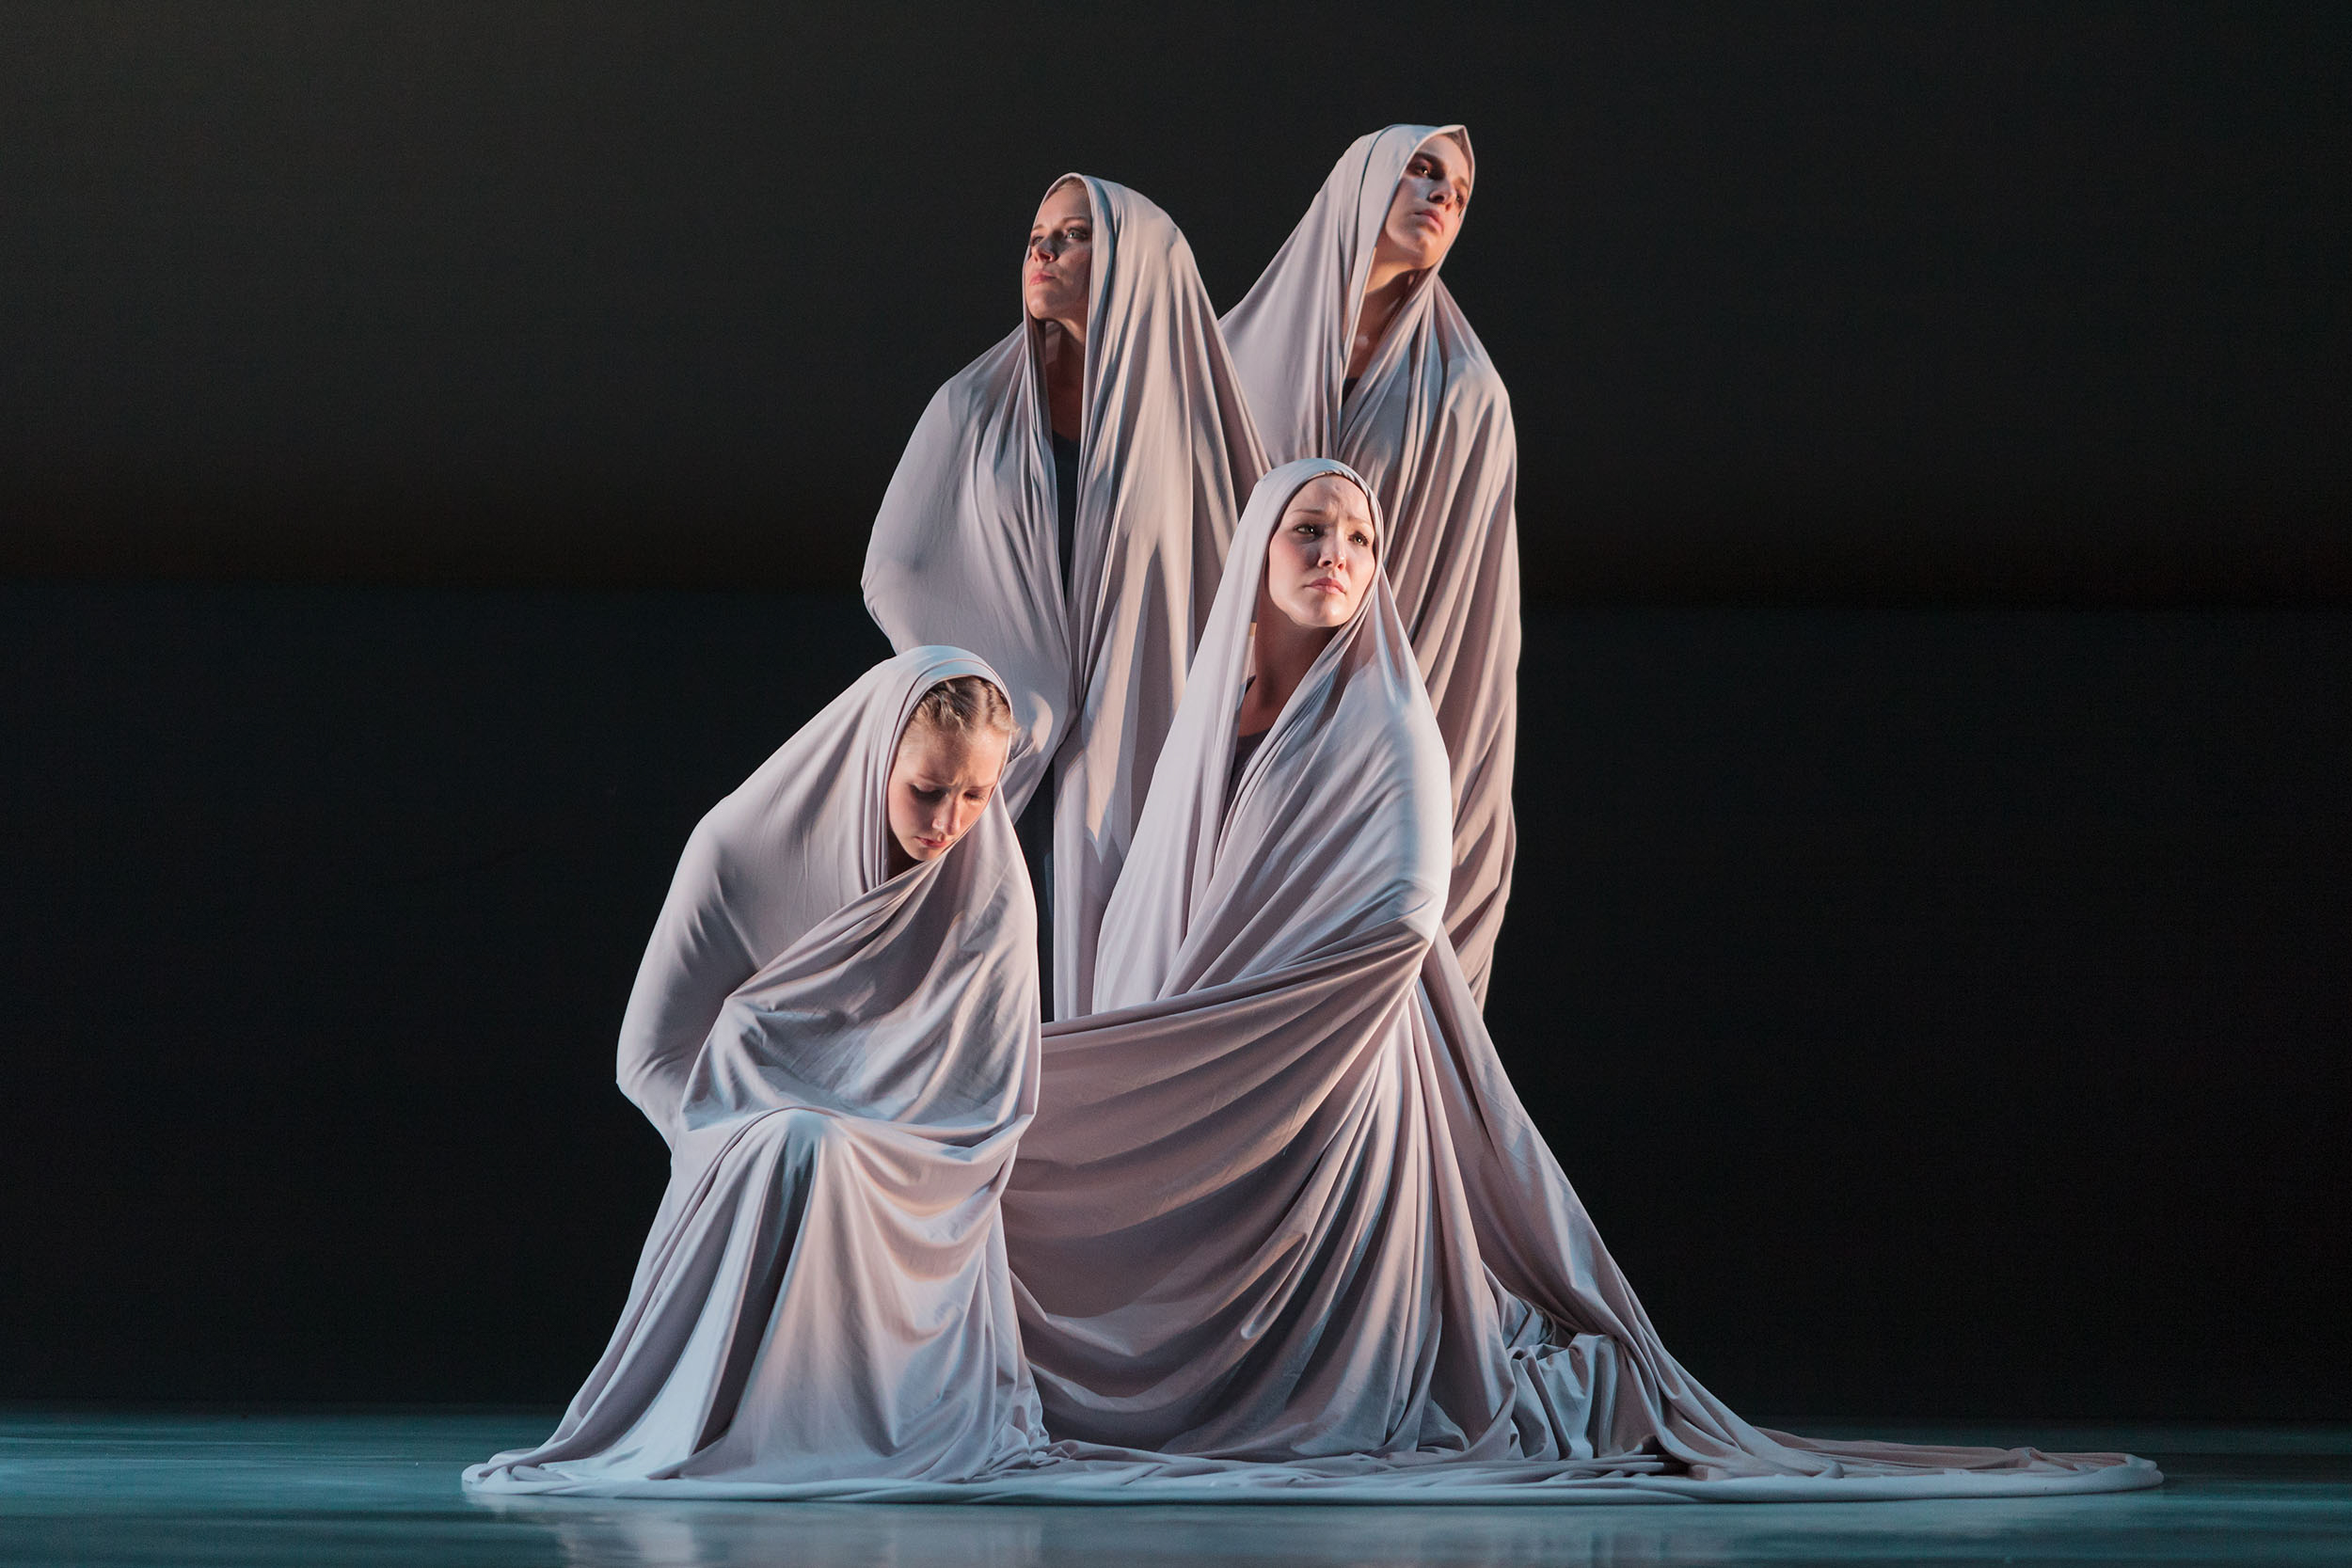 L to R: Ensemble members Andrea Beasom, Anne O'Donnell, Sarah Parnicky and Lily Smith in The Glimmerglass Festival's 2013 production of Pergolesi's  Stabat Mater .